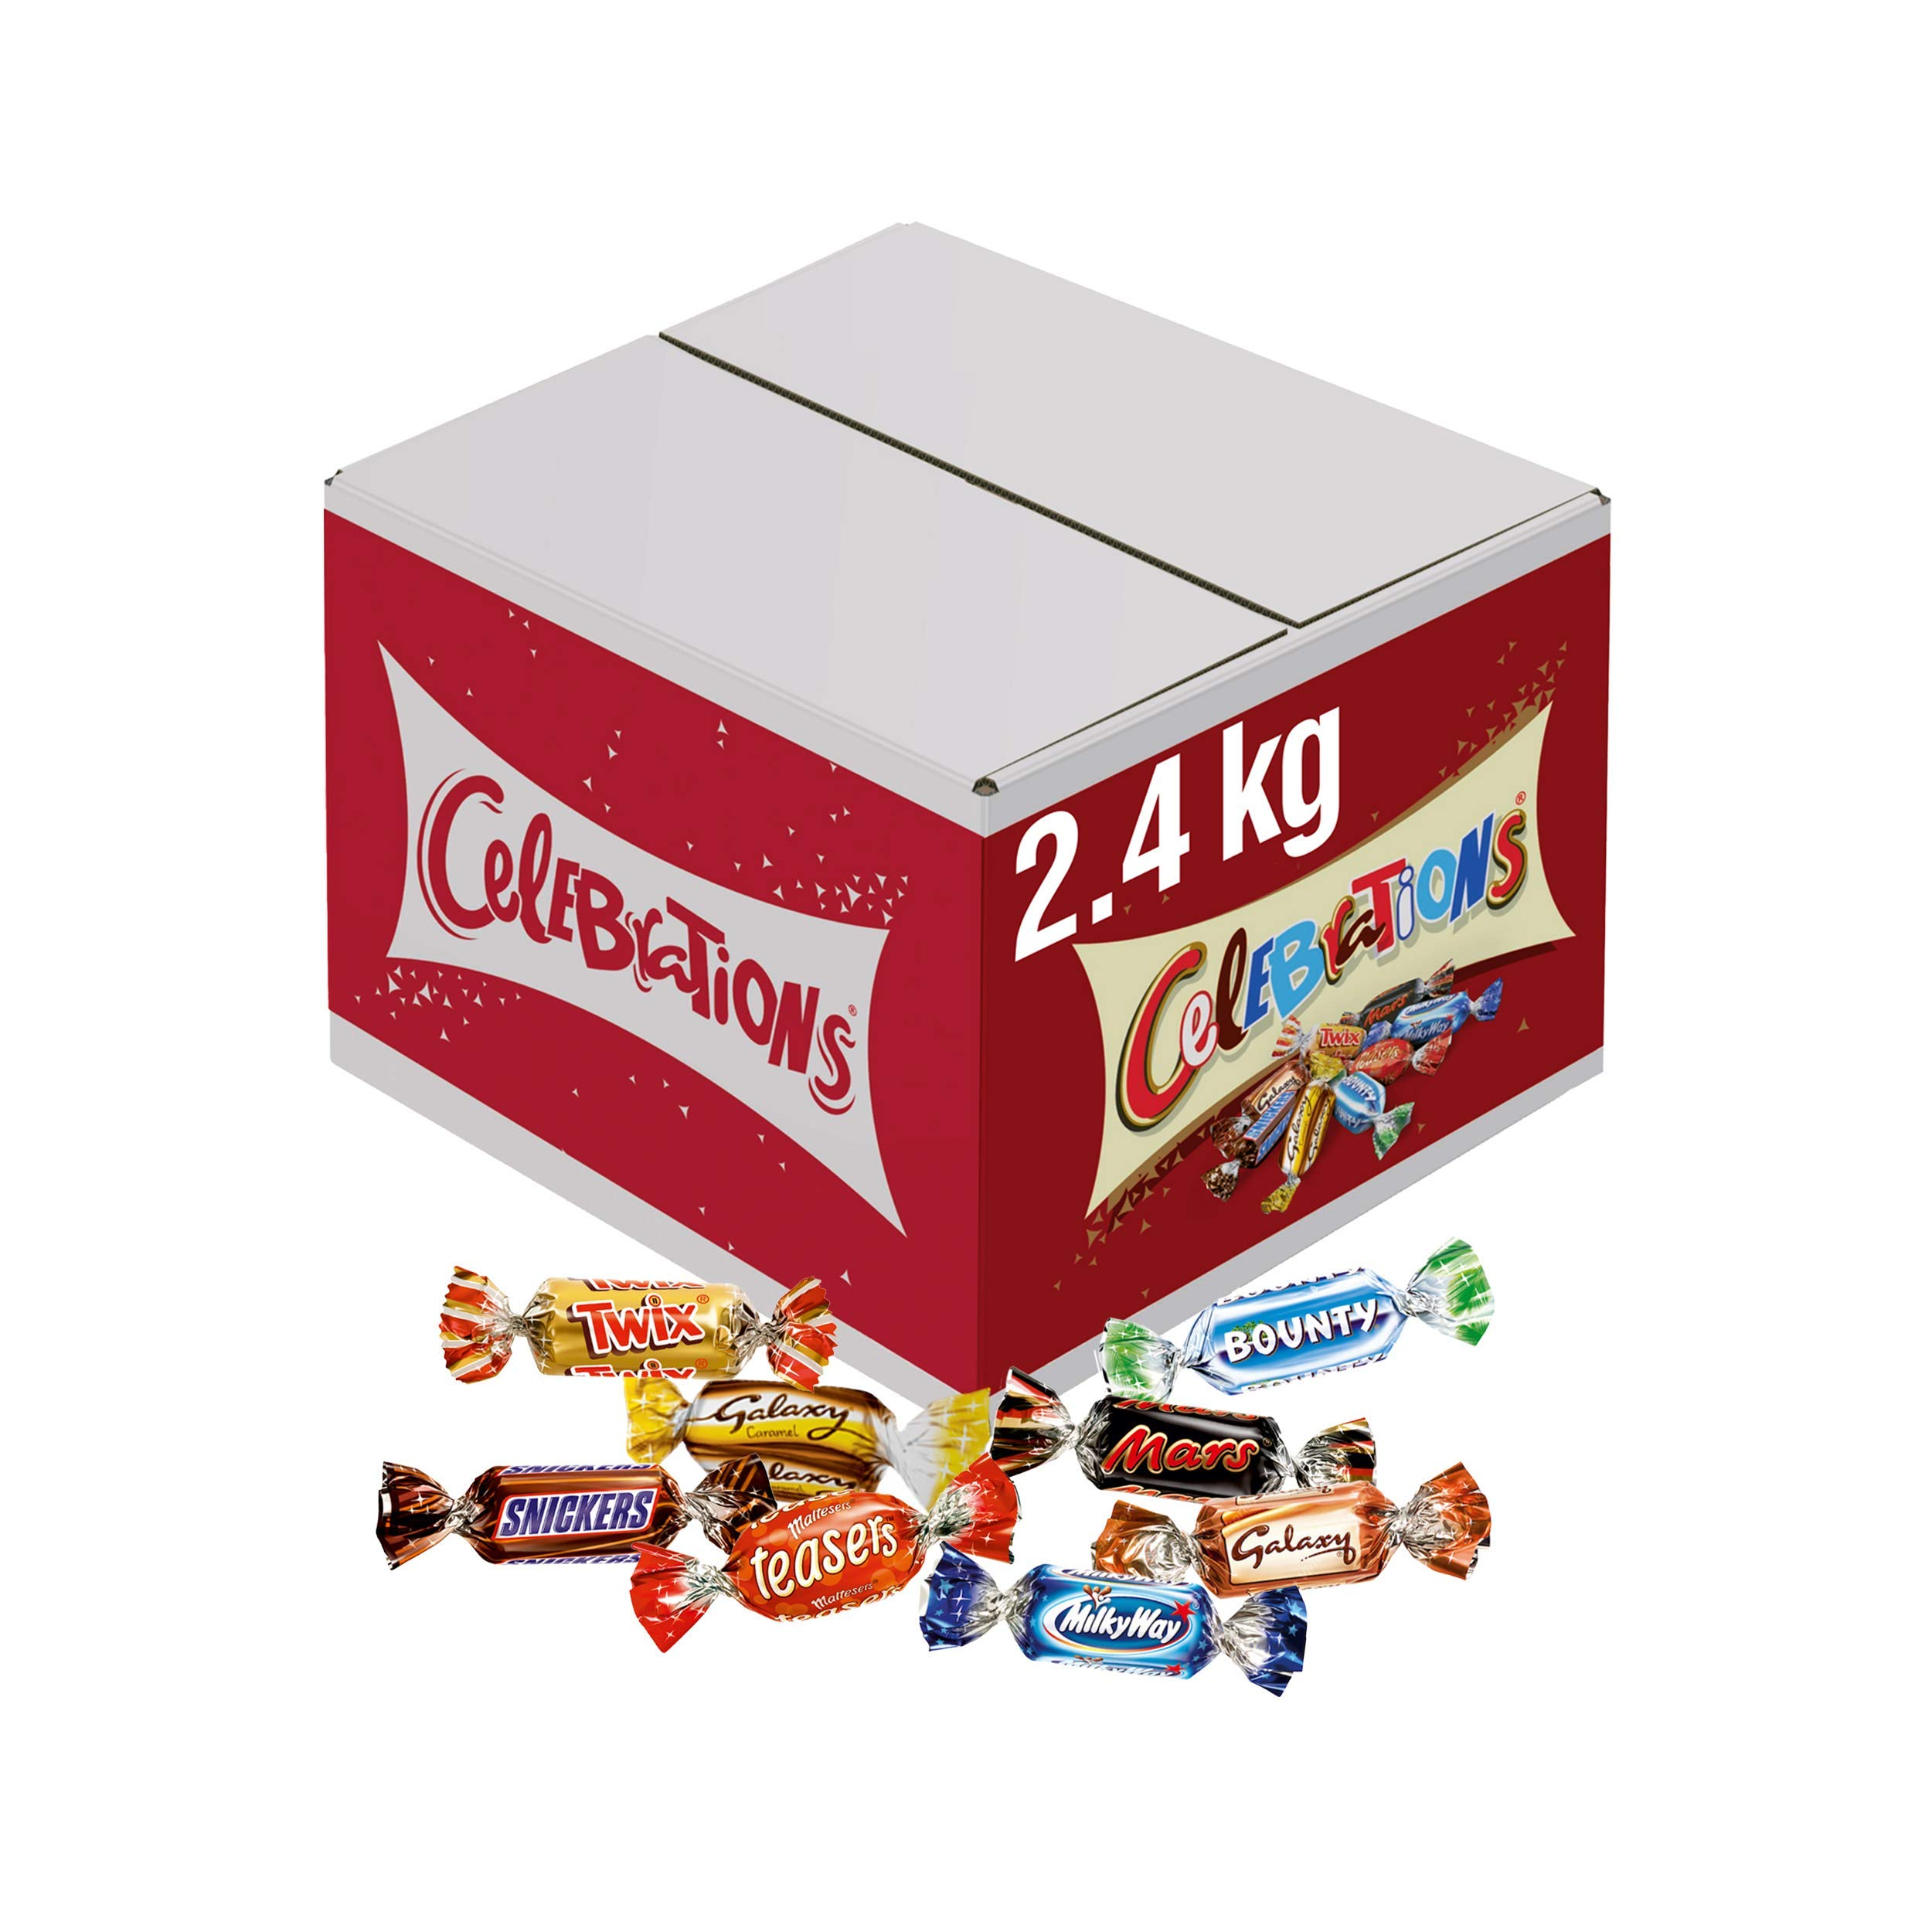 Celebrations Chocolate Bulk Box, (Maltesers, Galaxy, Snickers and More), 2.4 kg